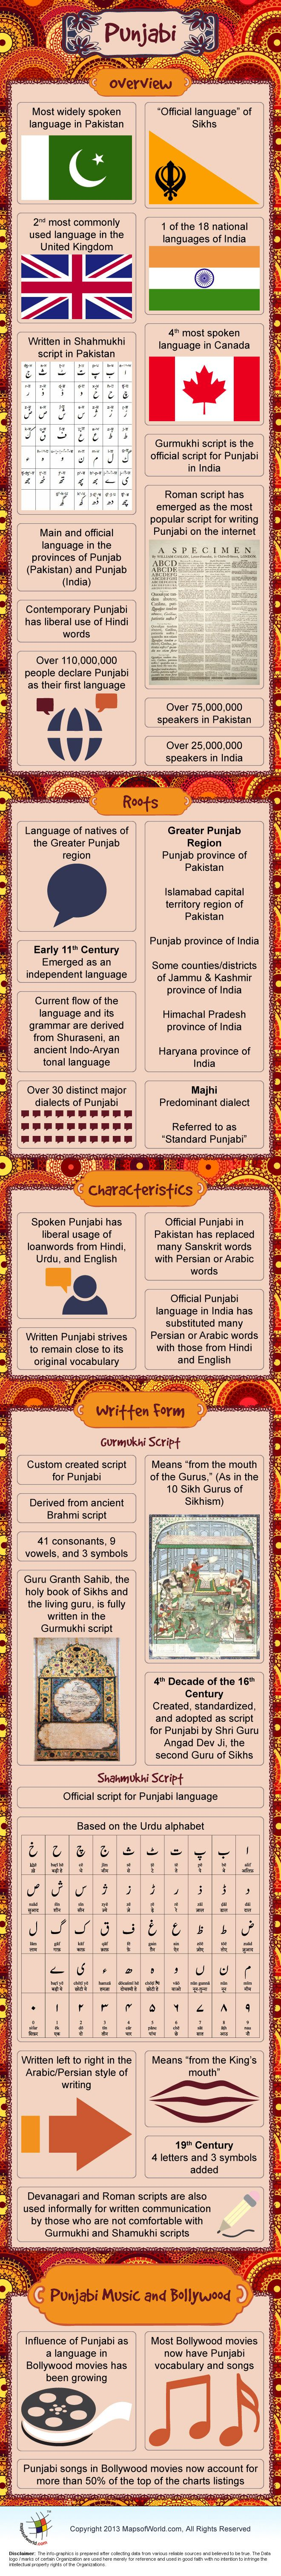 #Punjabi is the most widely spoken language in #Pakistan